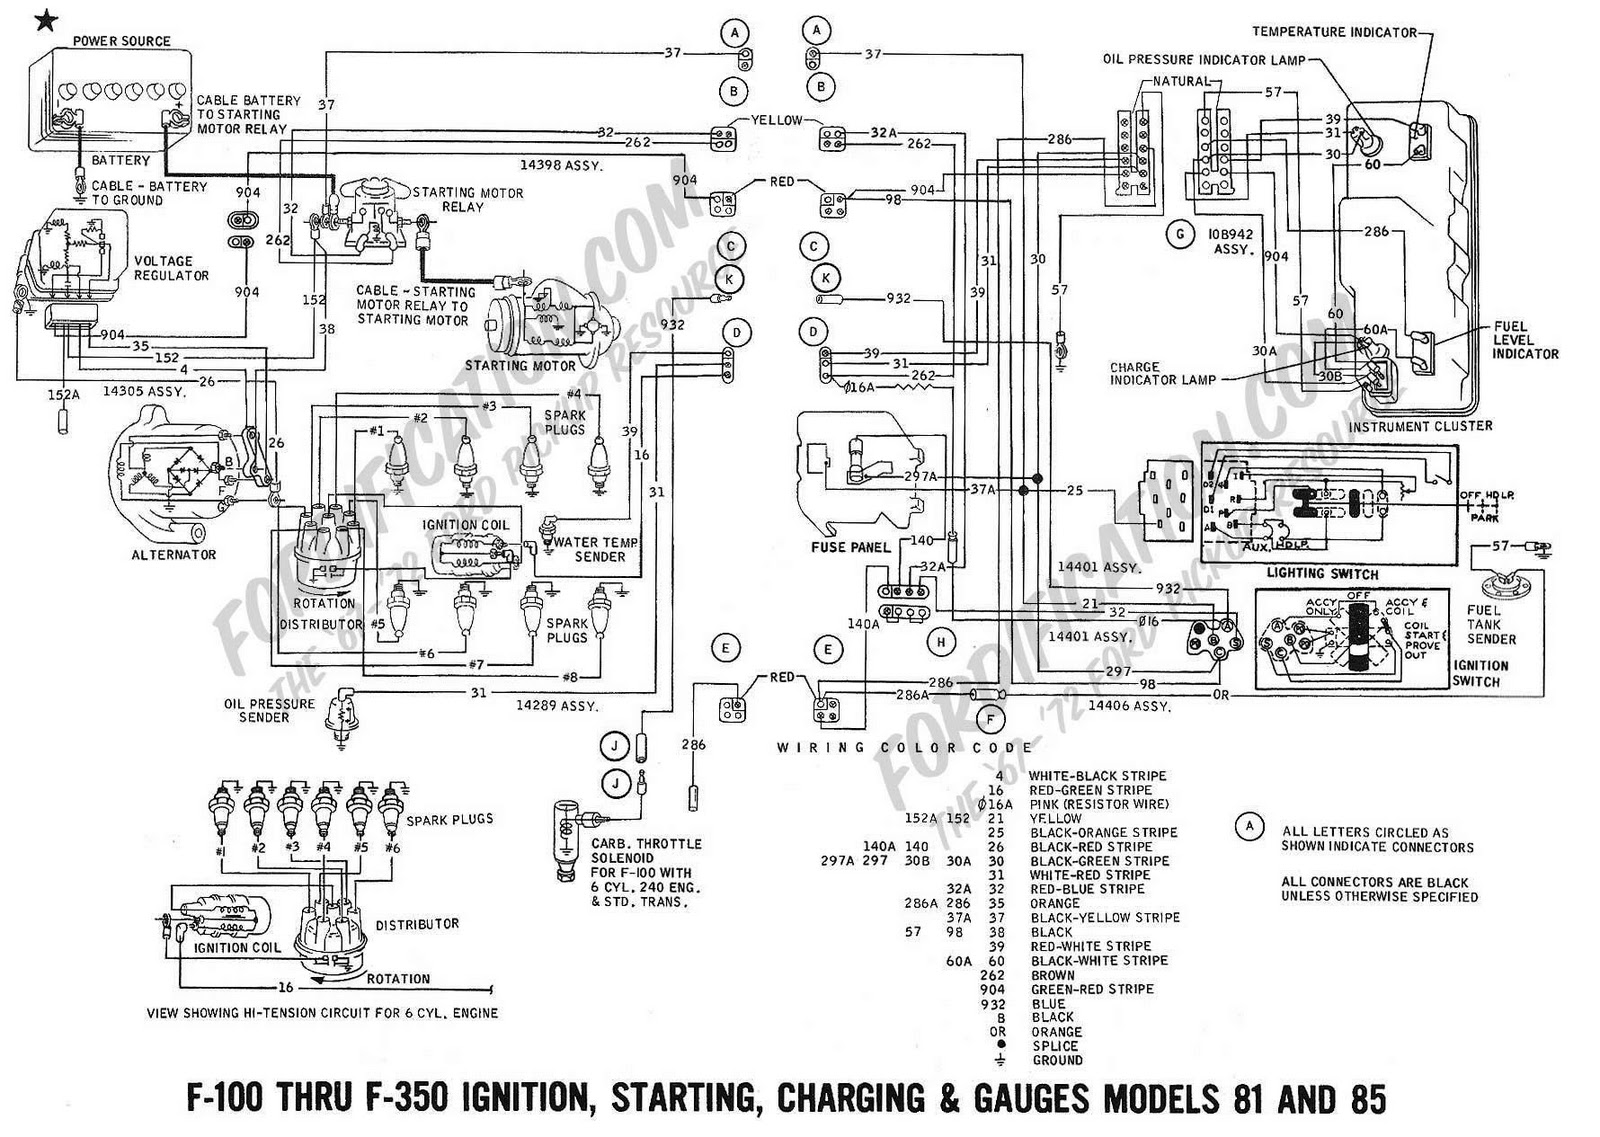 91 Camaro Wiper Wiring Diagram on 97 grand marquis turn signal wiring diagram